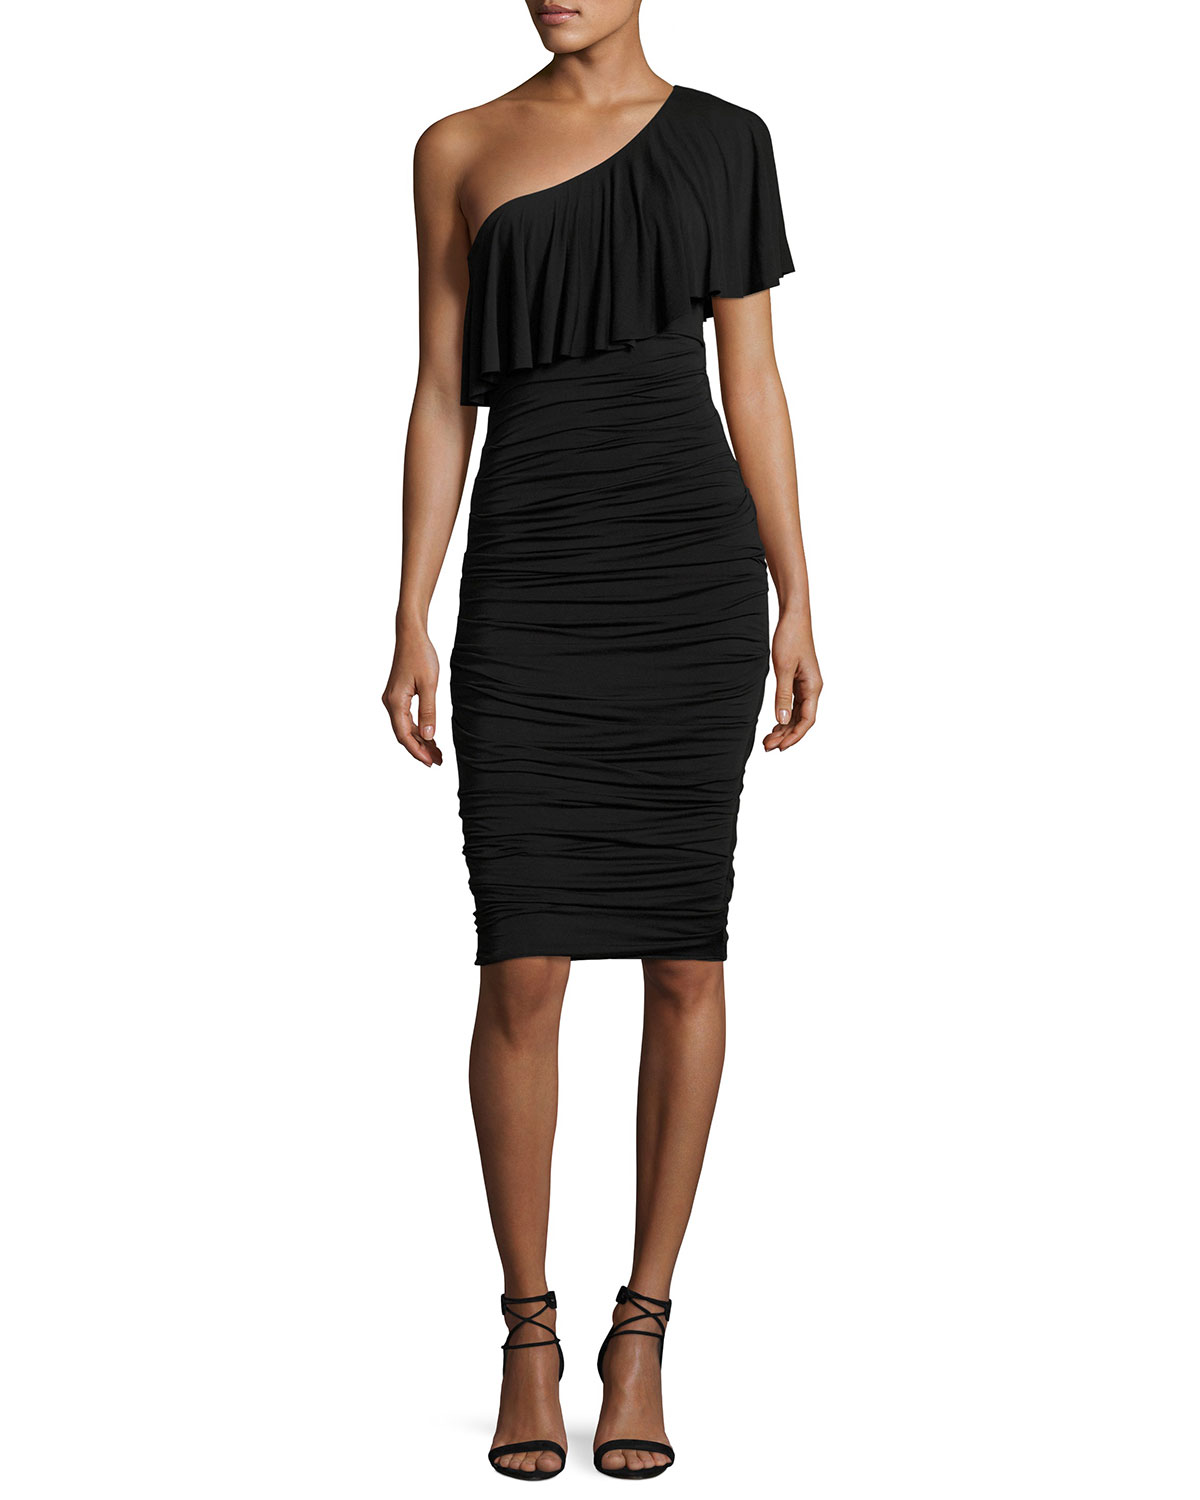 Barbados One-Shoulder Ruched Cocktail Dress, Black